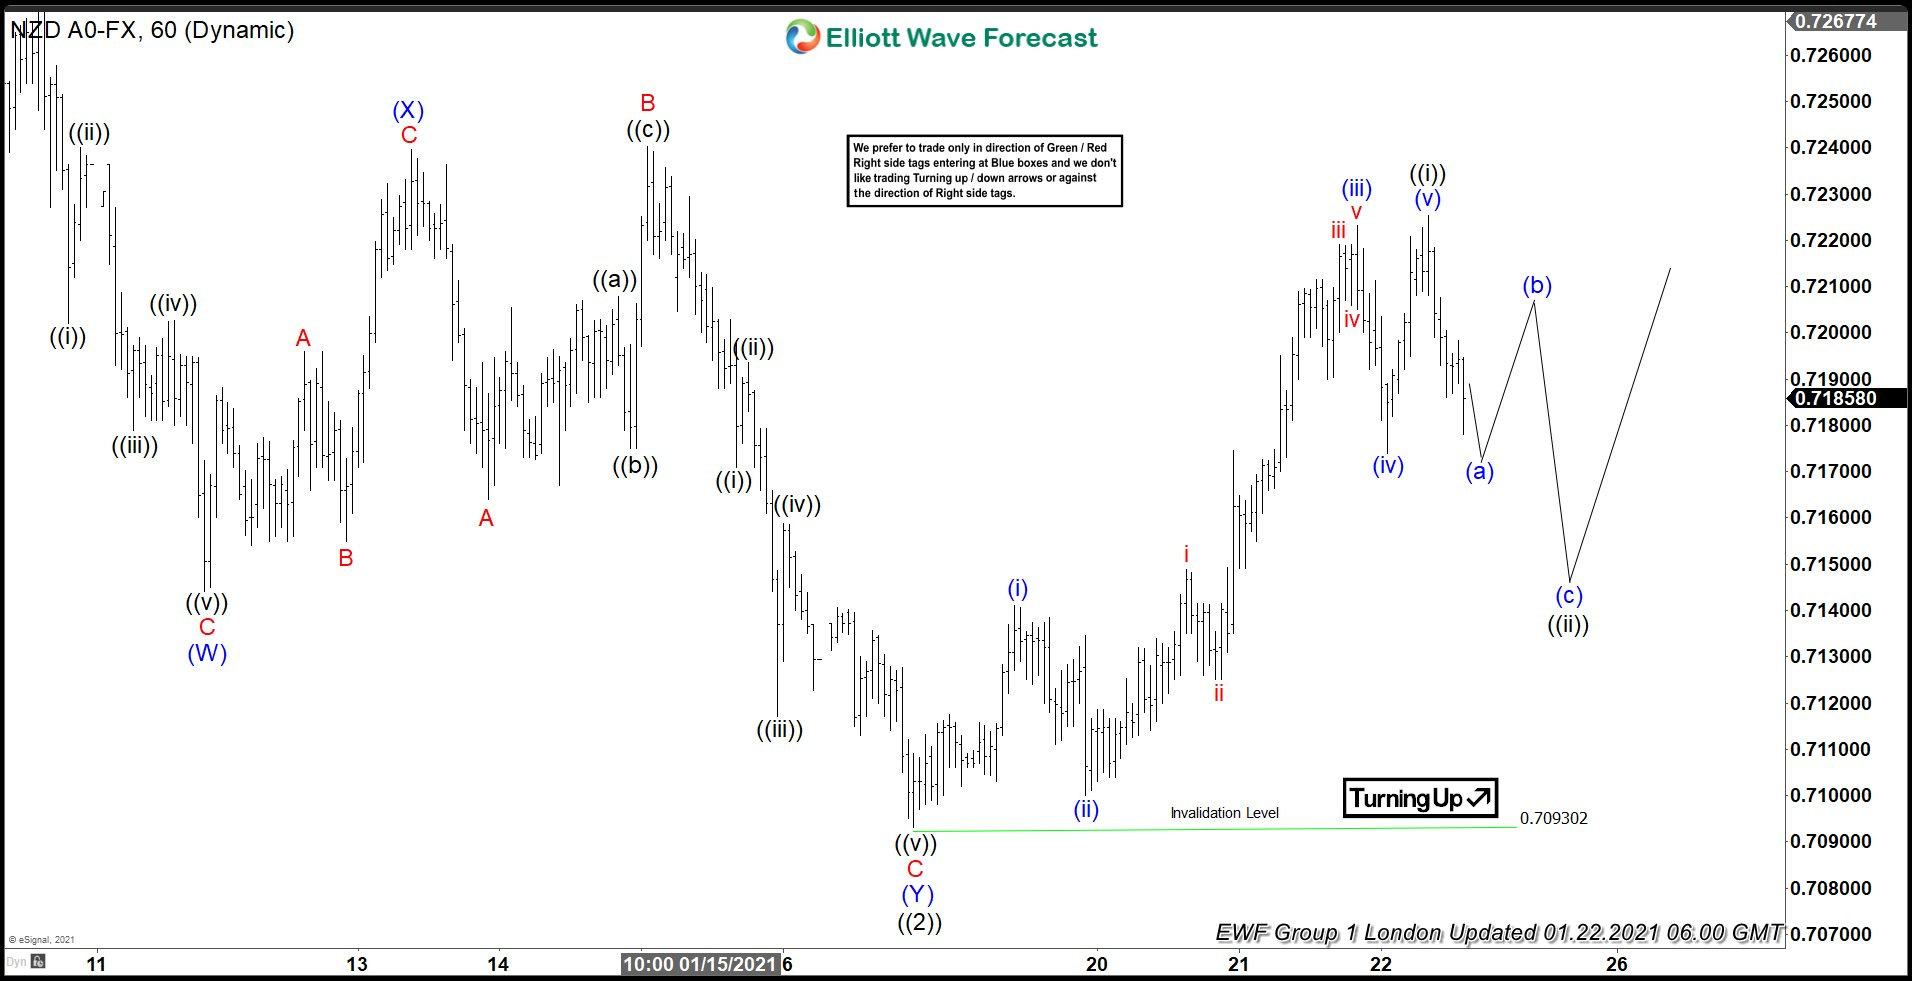 Elliott Wave View: Impulsive Rally in NZDUSD